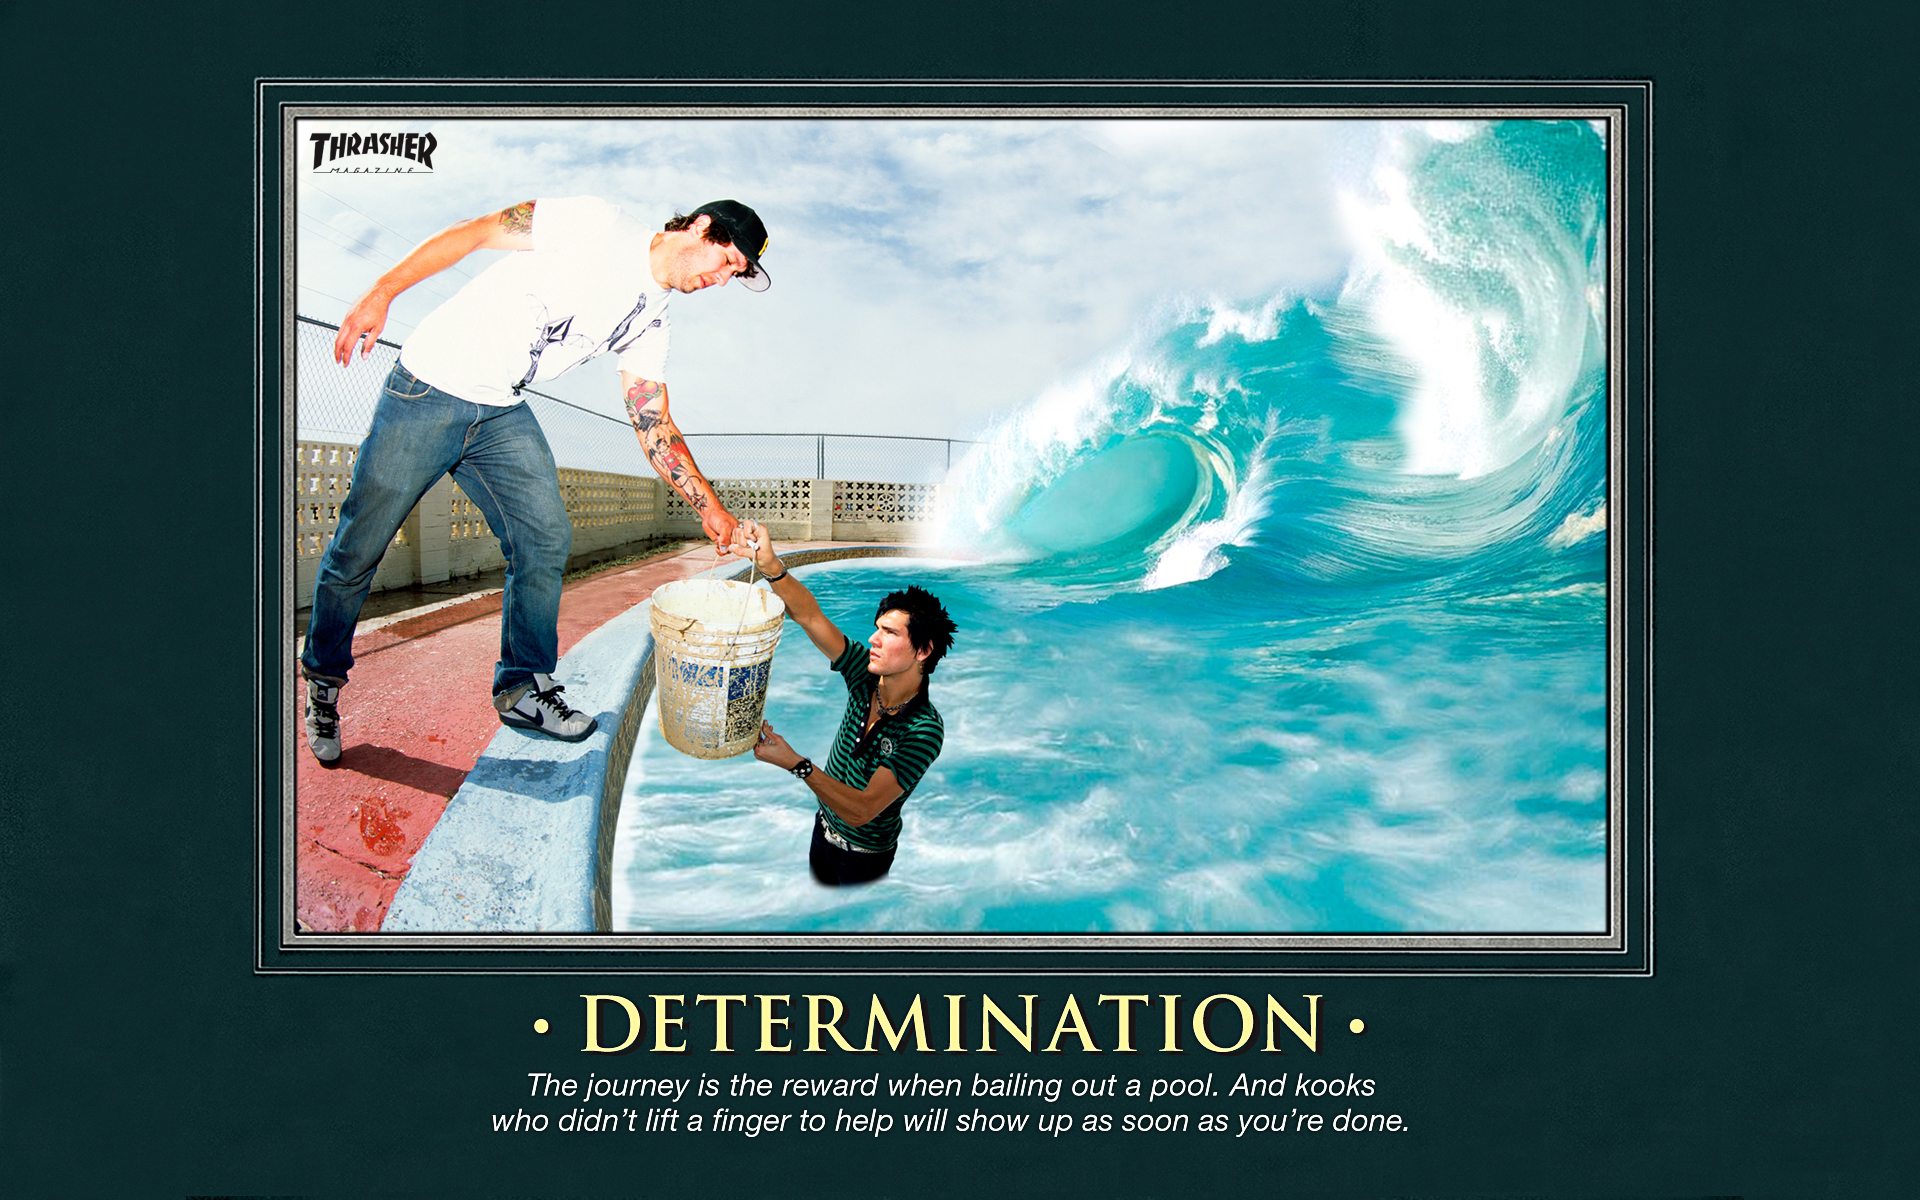 Attitude Quotes Wallpaper Download Thrasher Magazine Motivational Wallpapers